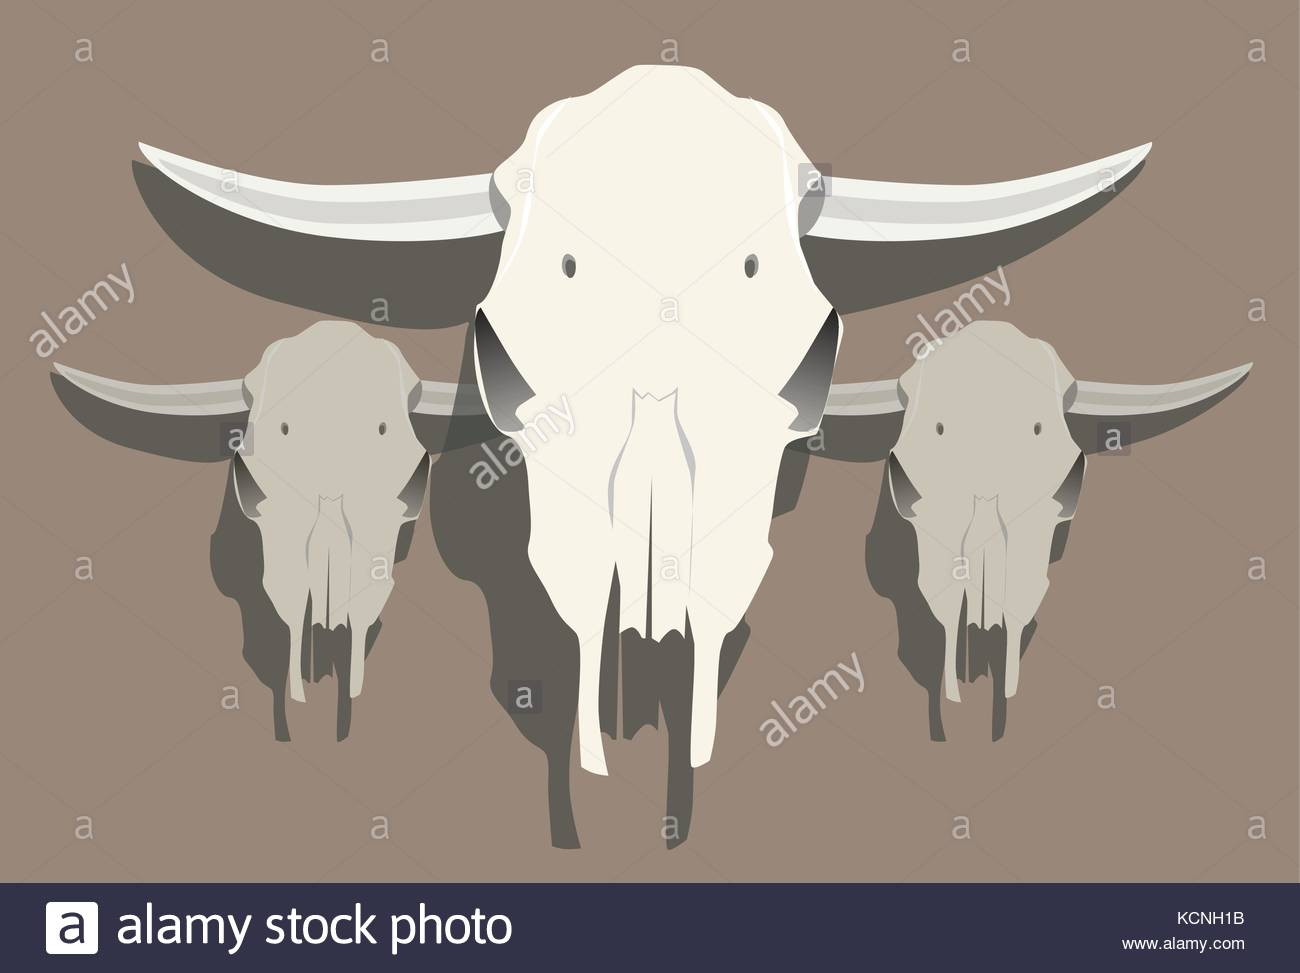 Group of Cow Skulls Illustration 1 - Stock Image